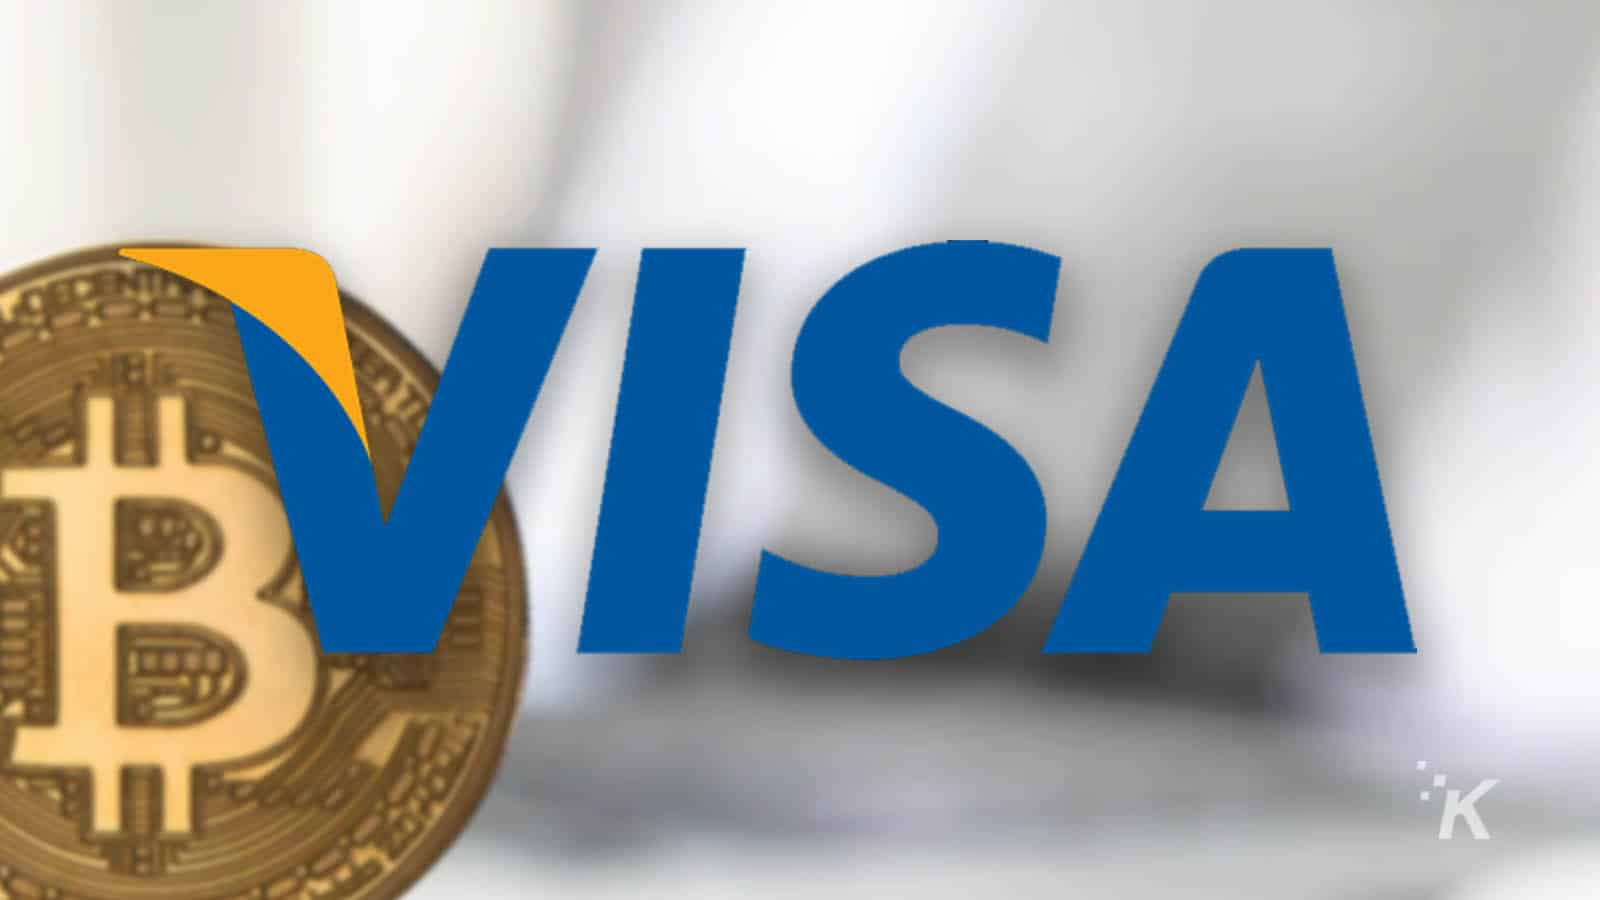 visa logo with bitcoin blurred in the background